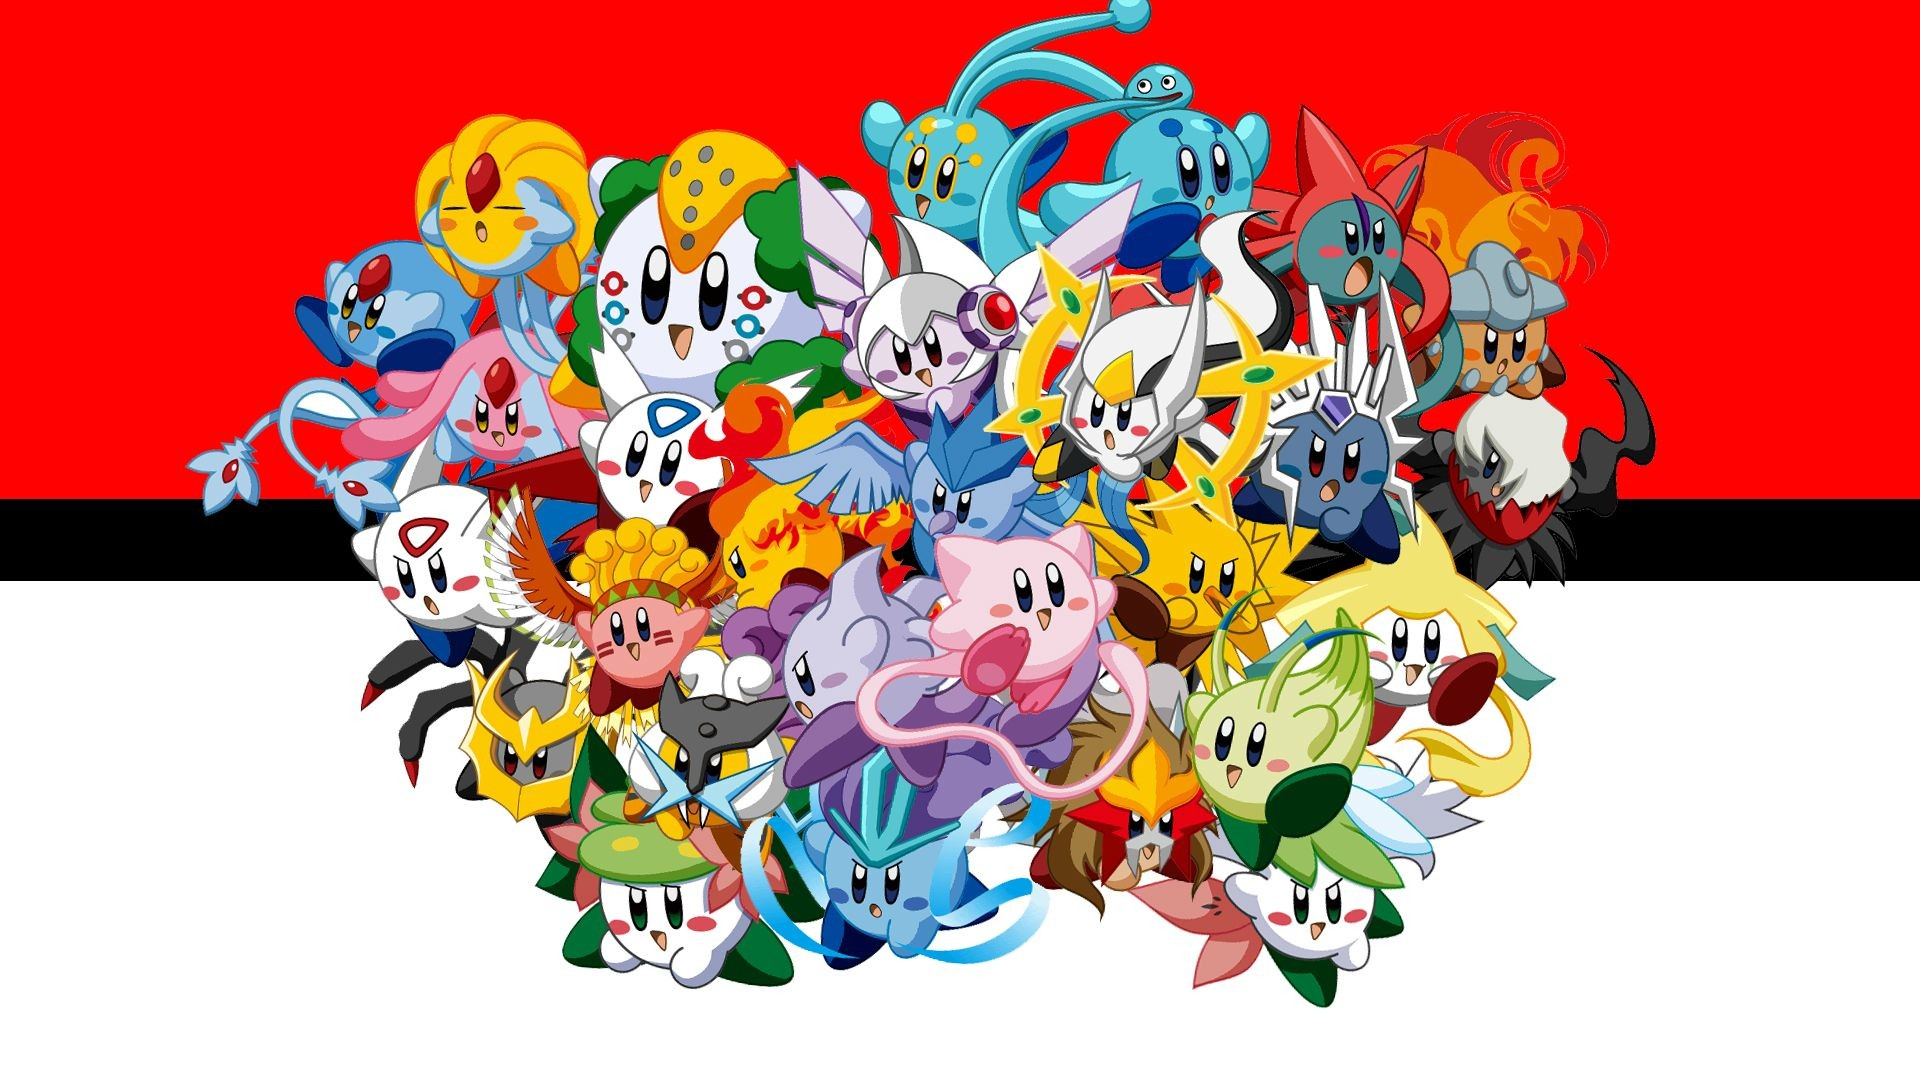 Pokemon Wallpaper Legendary Download Free Hd Backgrounds For